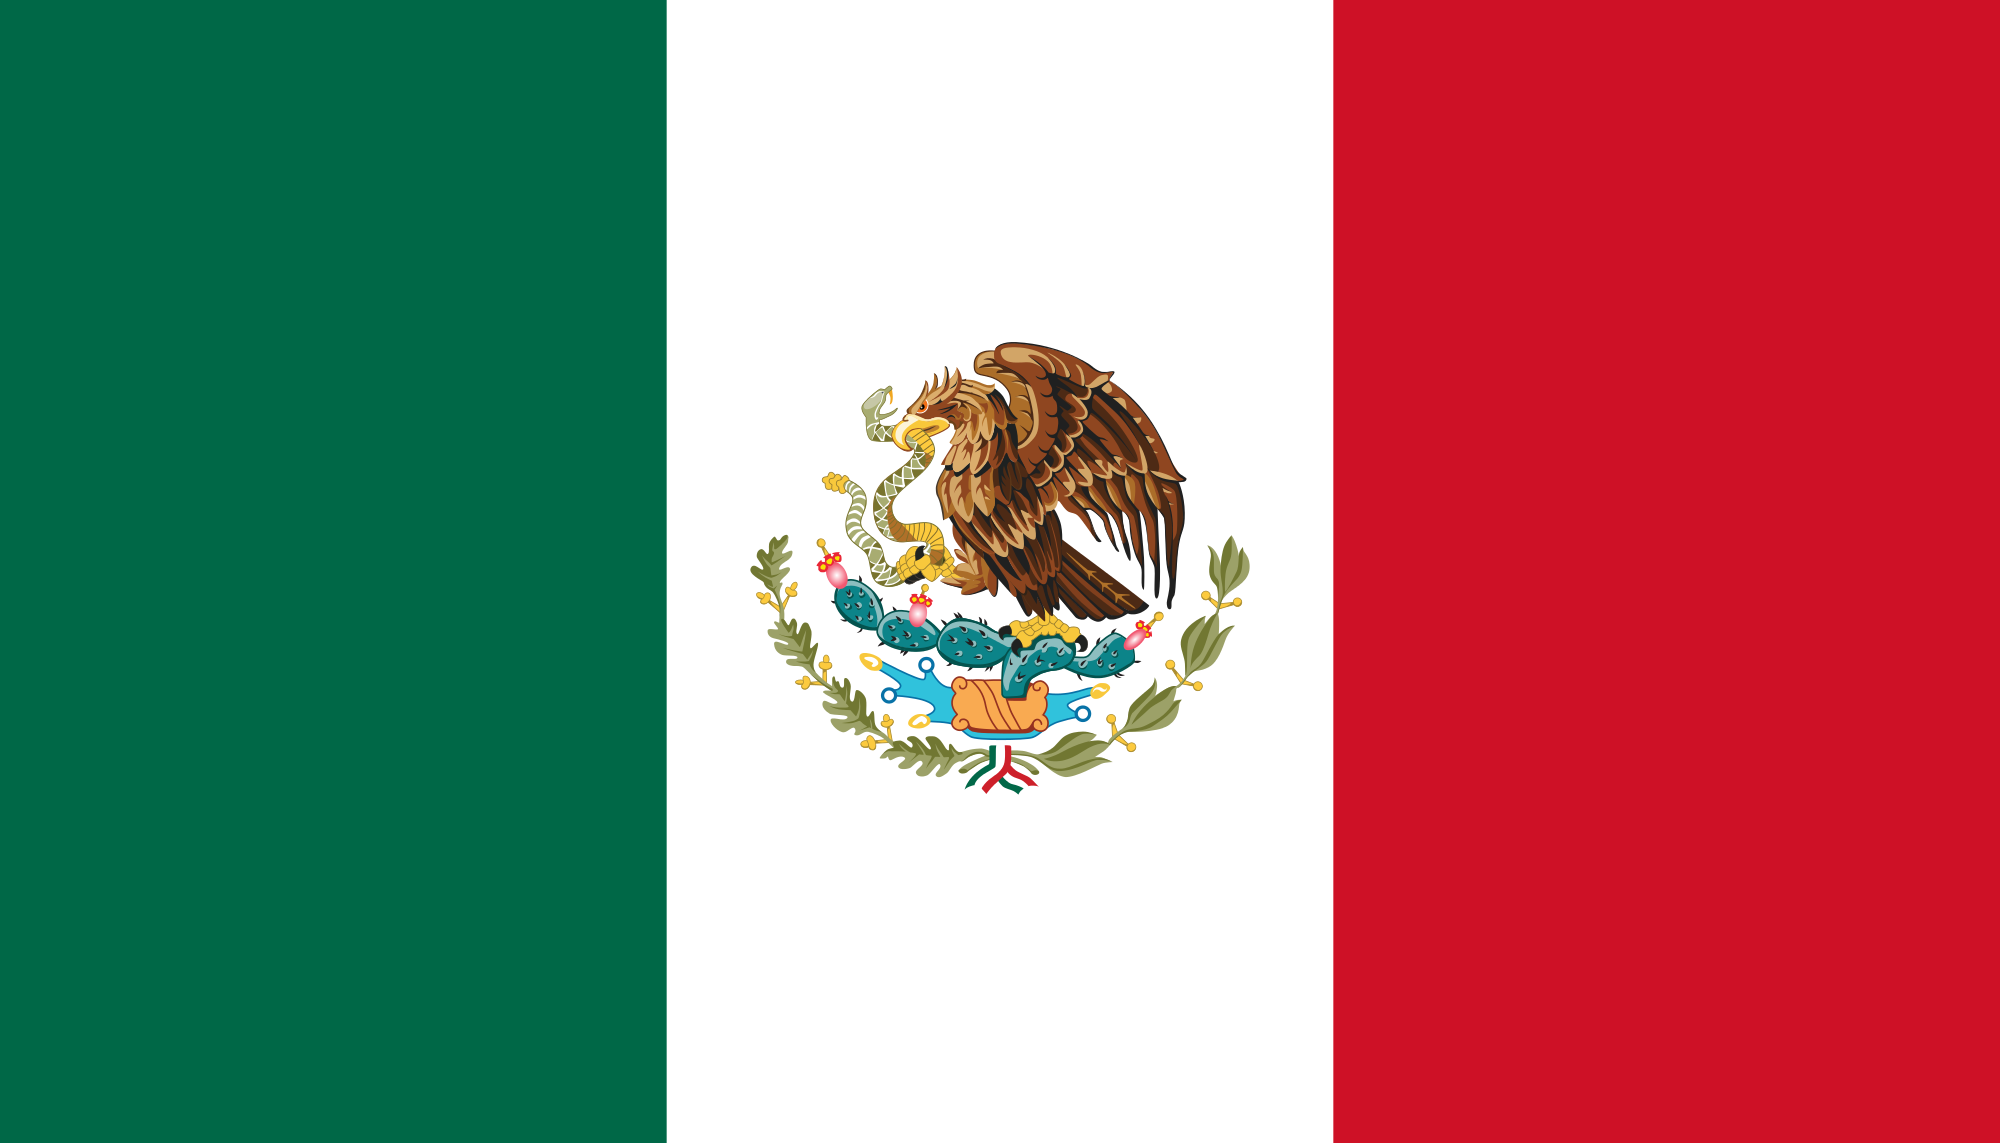 http://news.goldseek.com/2016/01.06.16/mexico.png